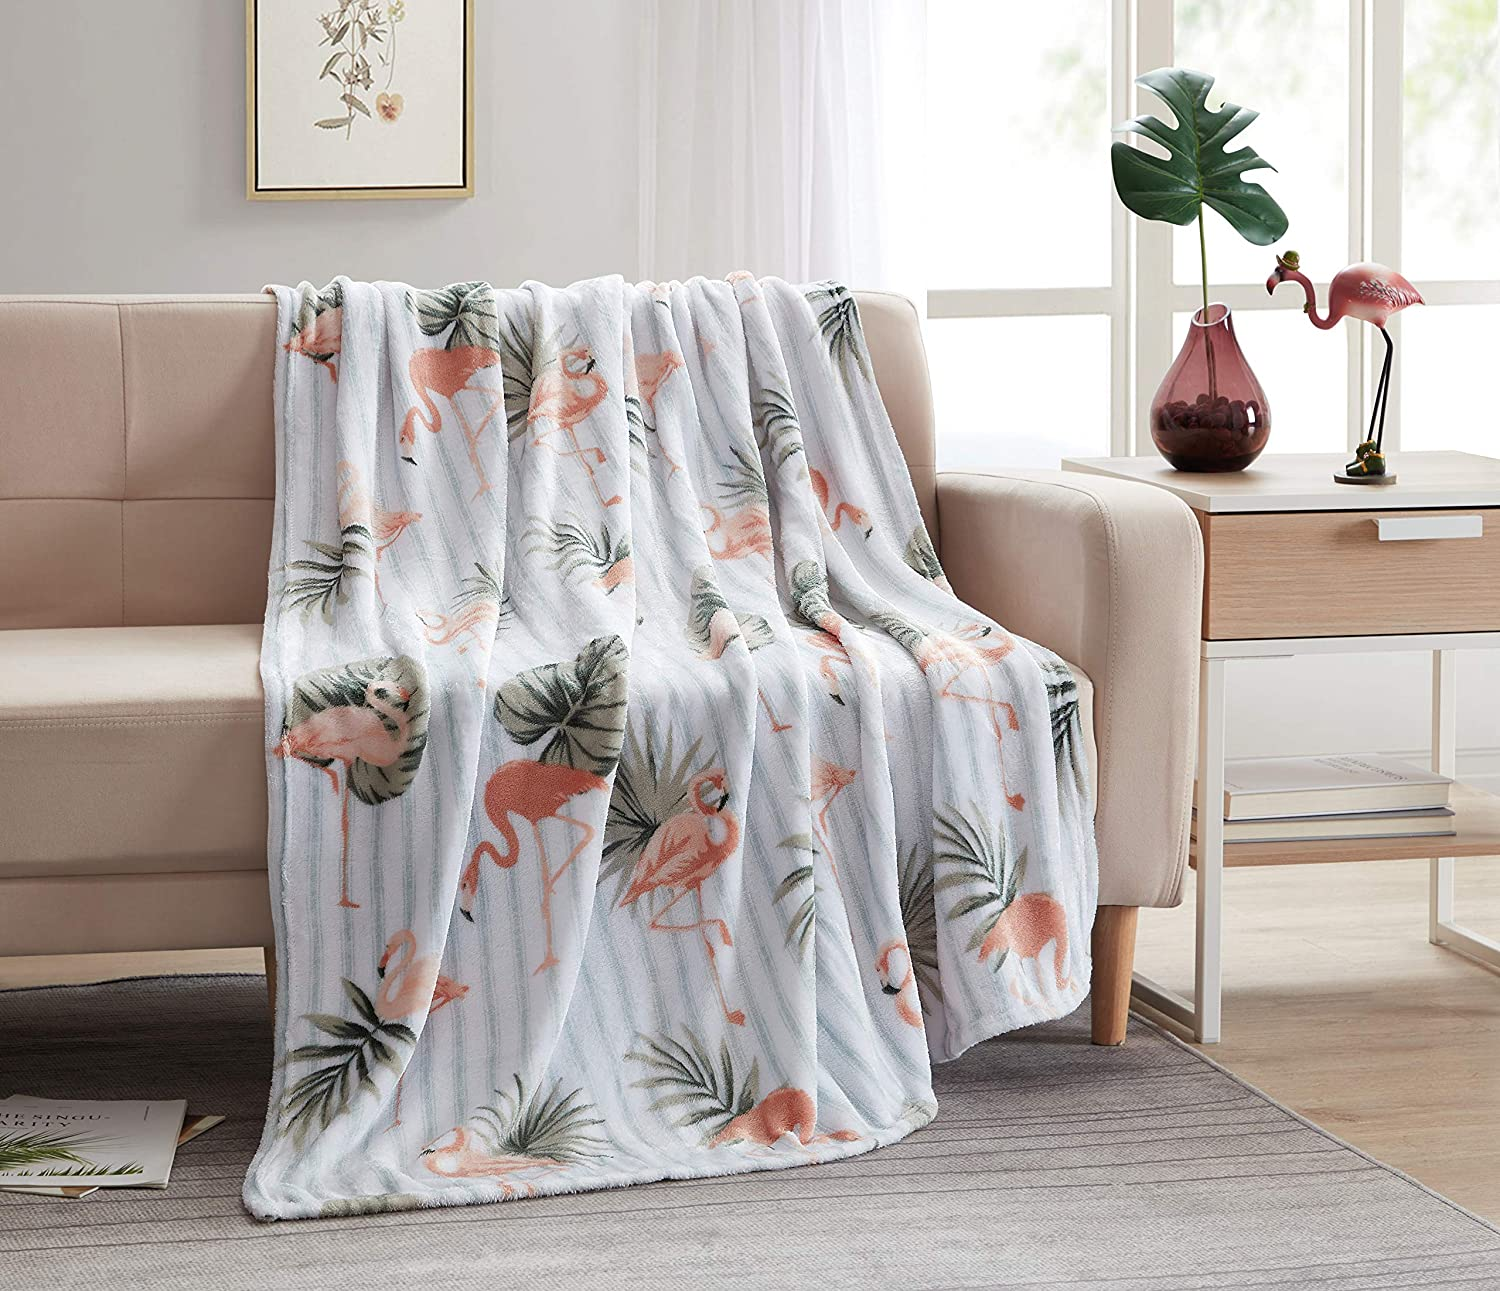 Morgan Home Fashions Luxury Velvet Plush Throw Blanket 2 Sizes- Soft, Lightweight, Cozy, Comfy and Warm for Use All Year Round and Any Season (Flamingo Bay, 50x60)